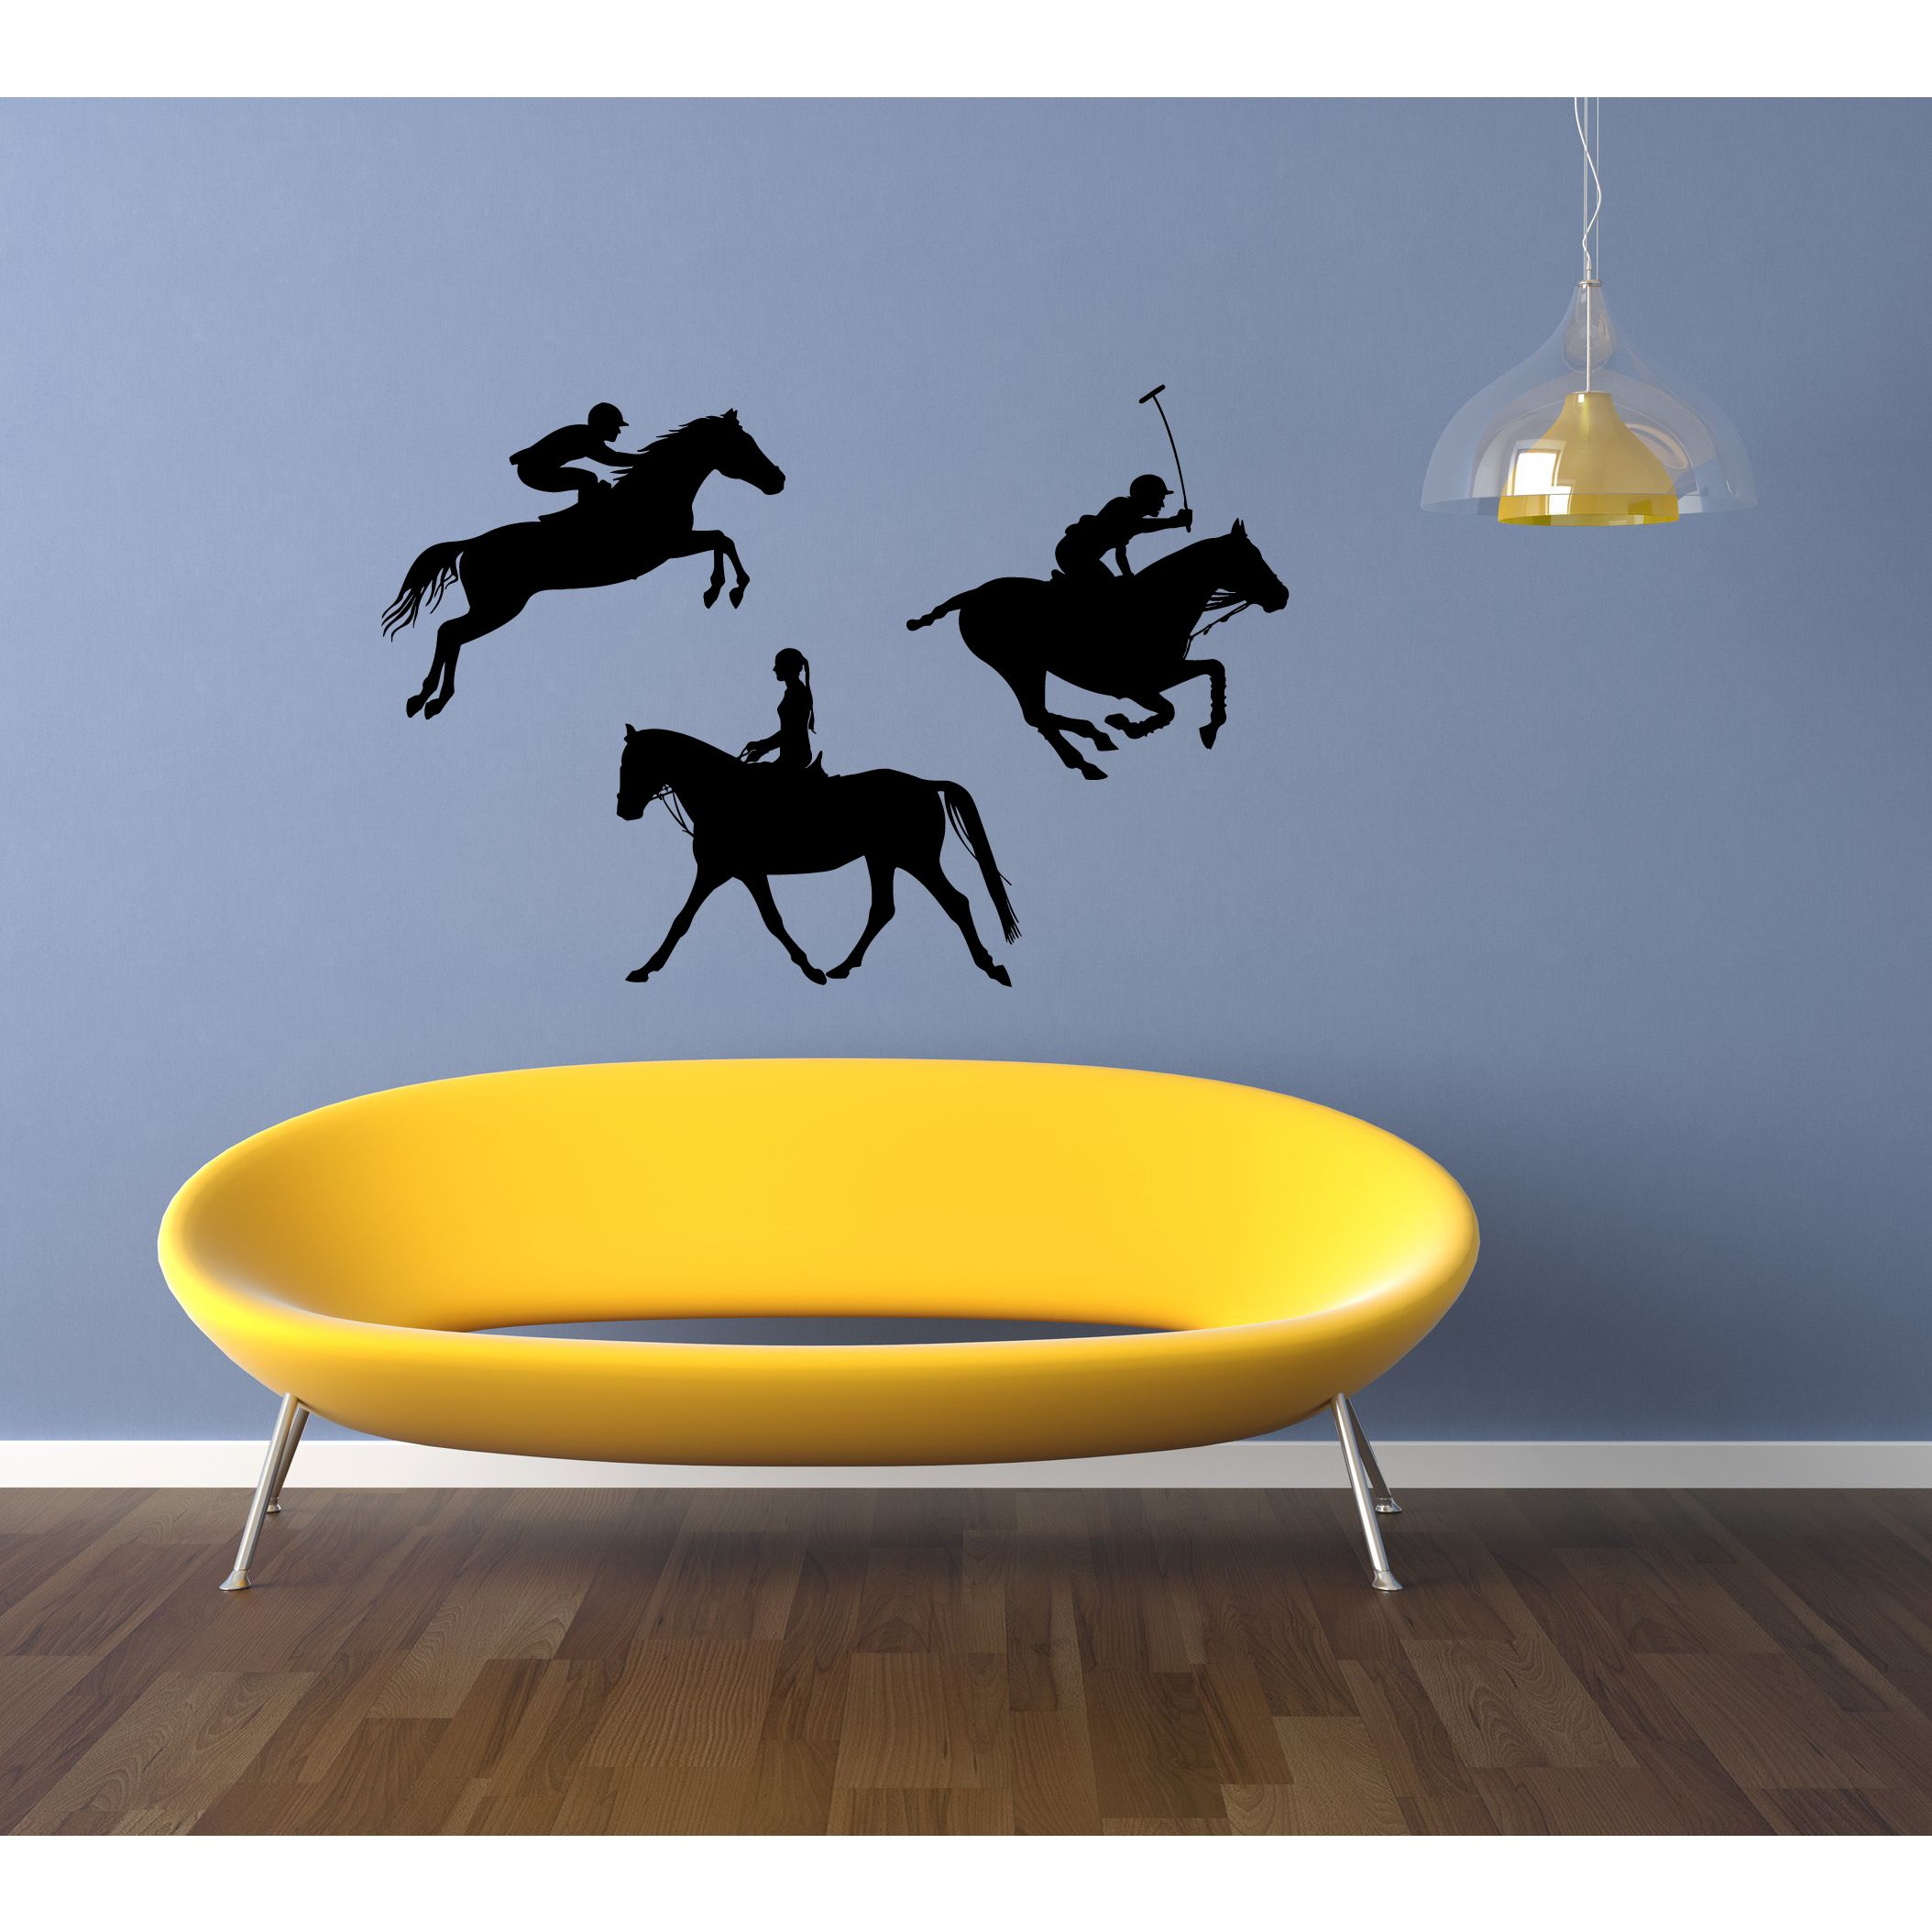 Graceful Polo Horse Sport People Wall Art Sticker Decal | Products ...